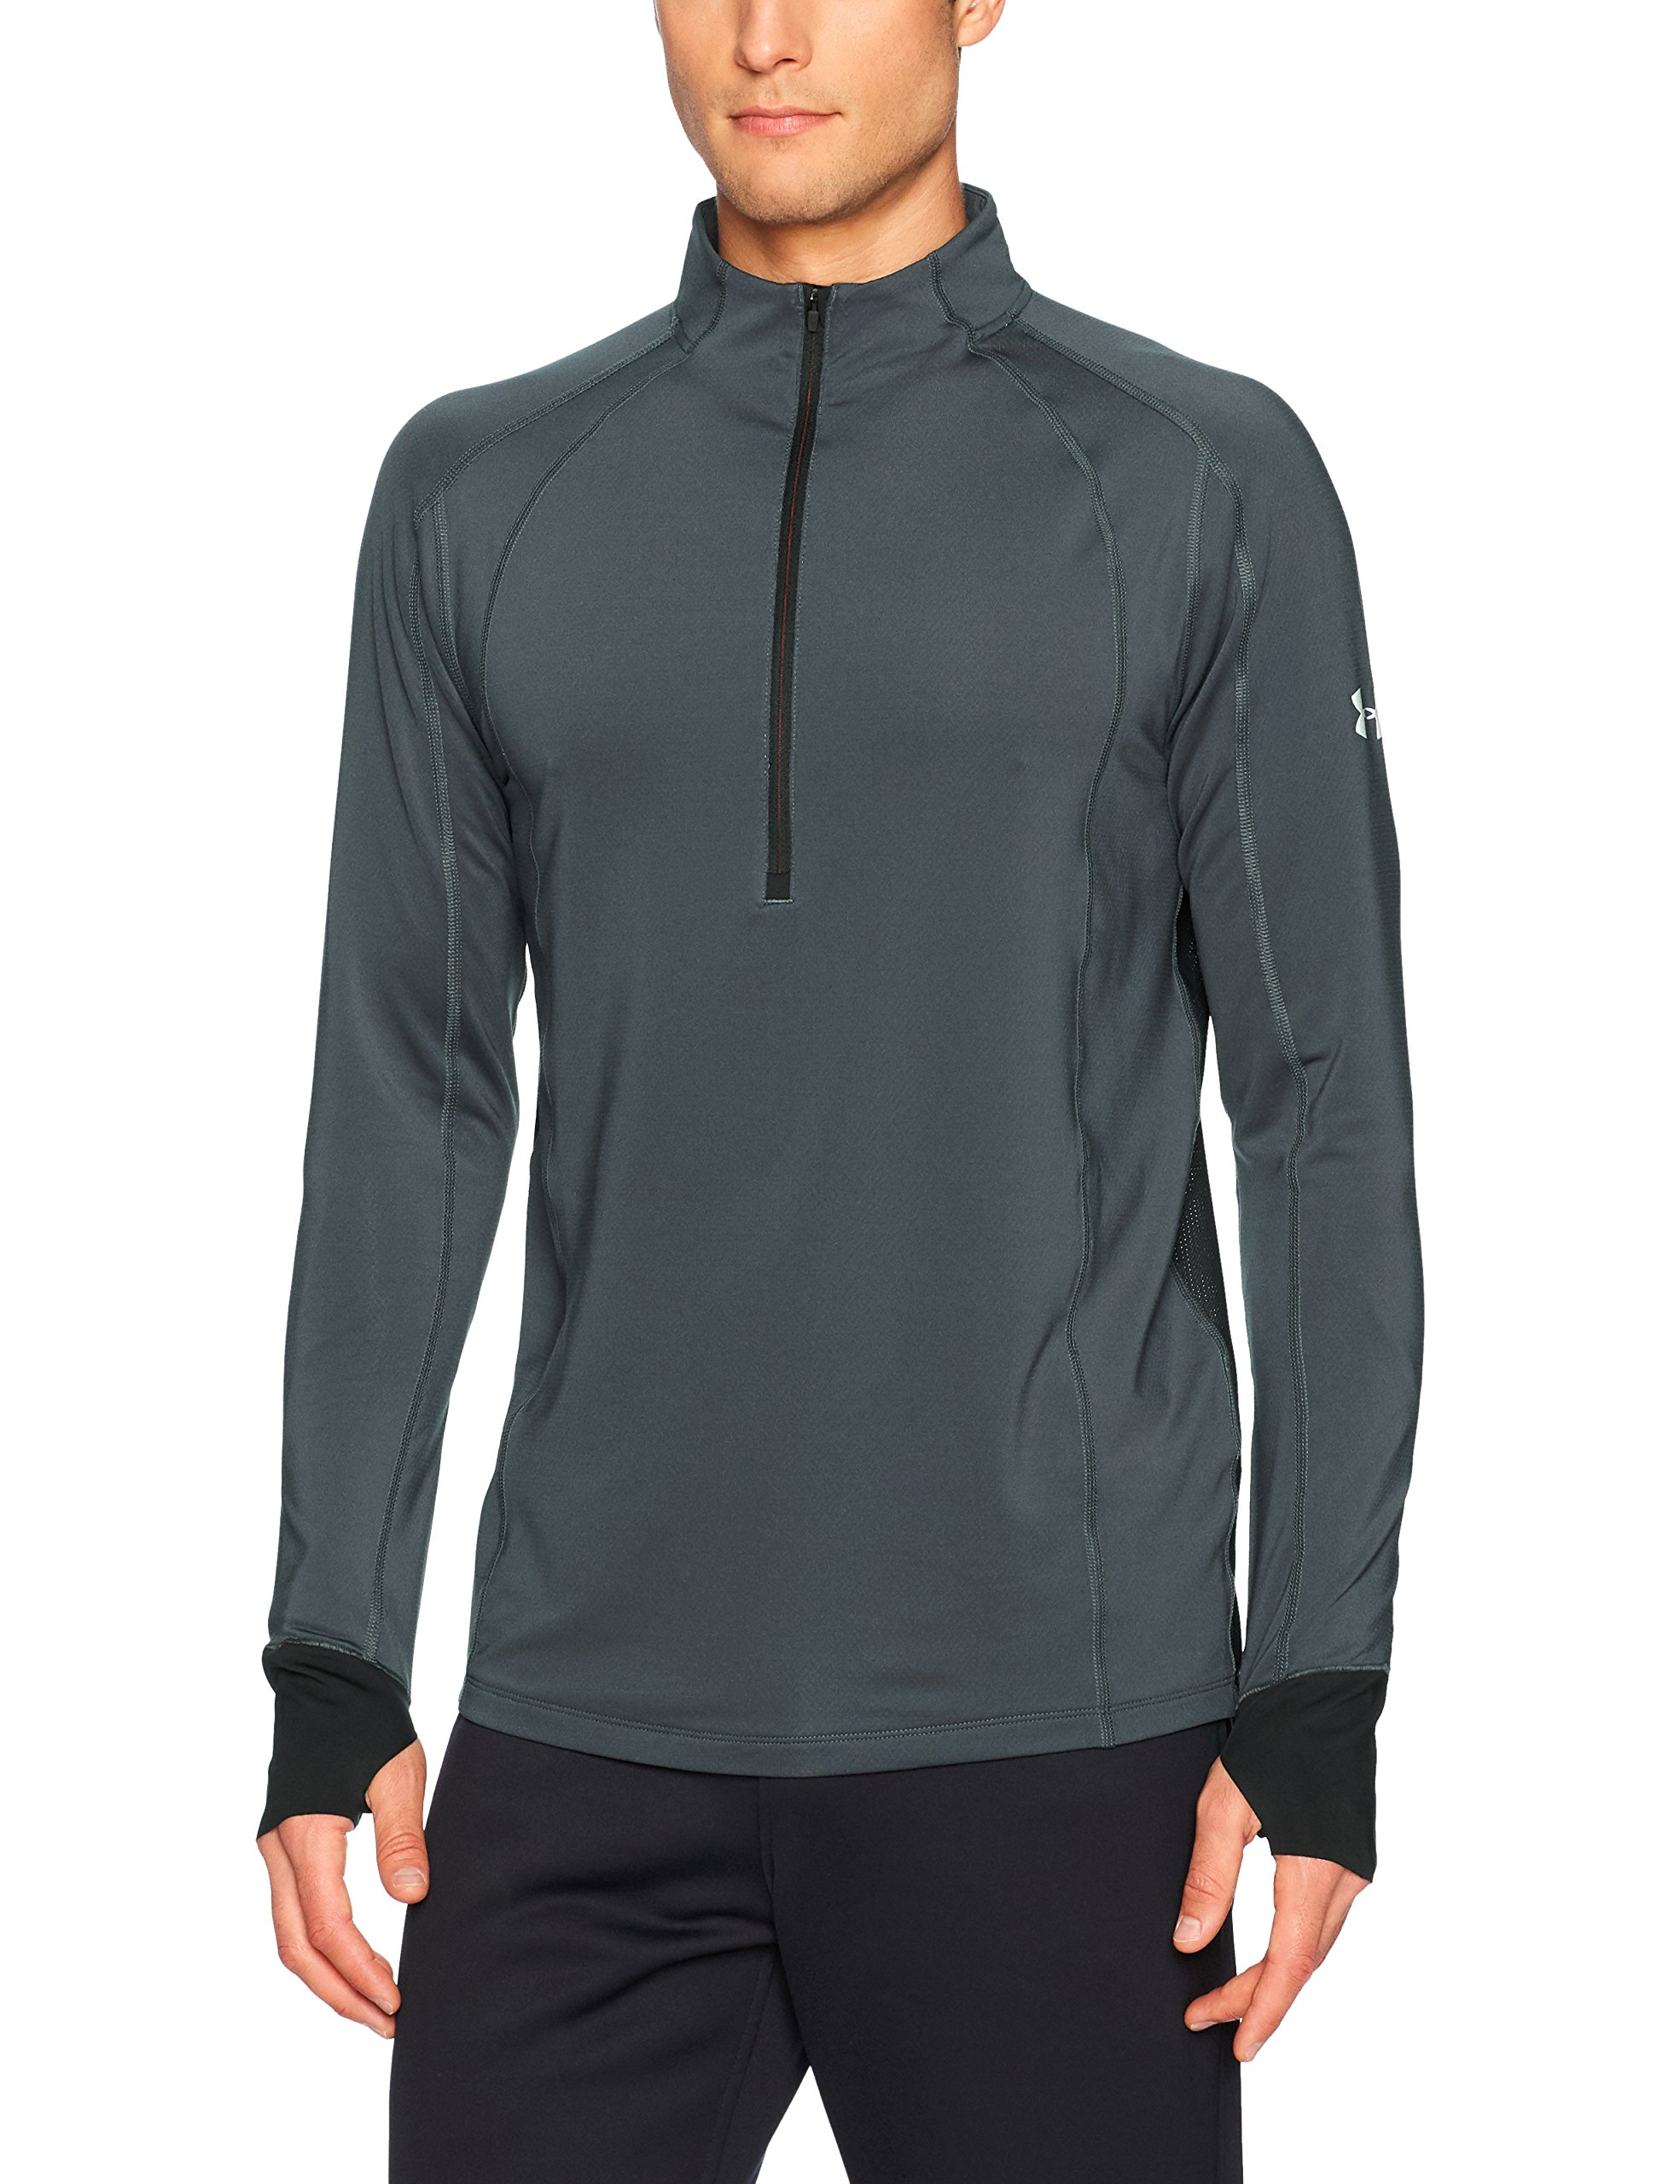 Under Armour Men's ColdGear Reactor Run ½ Zip,Stealth Gray (008)/Reflective, Medium by Under Armour (Image #1)